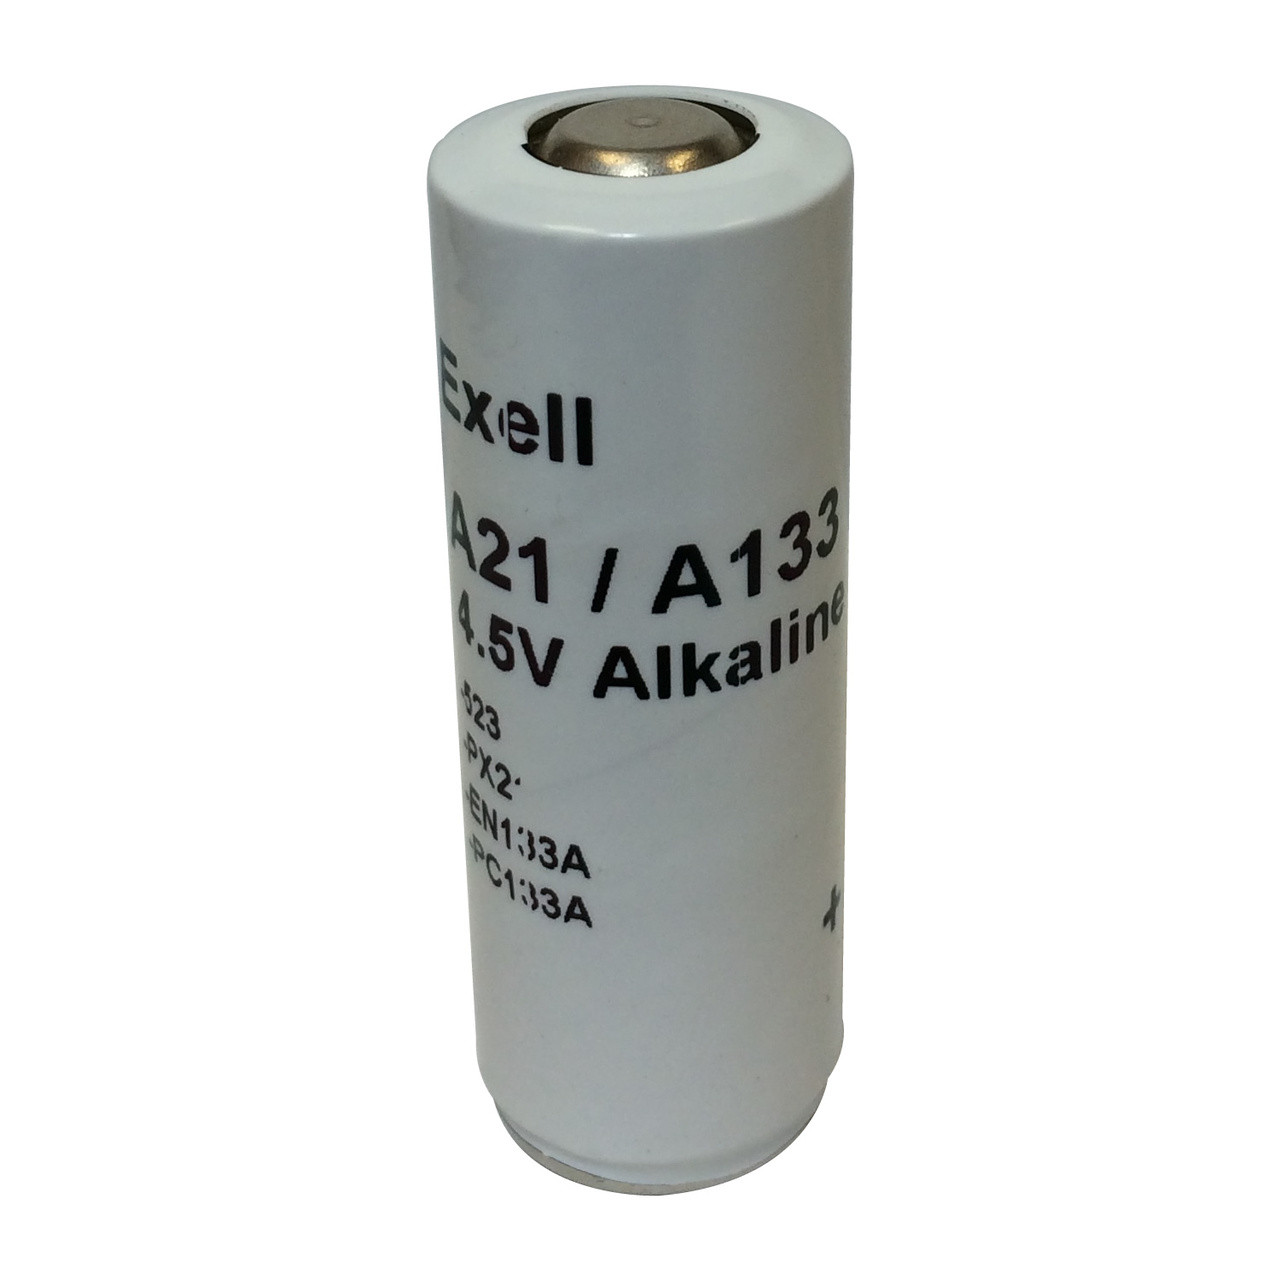 4.5V A21PX Exell Battery 523, 3LR50, A133, PC133A, RPX21 ...